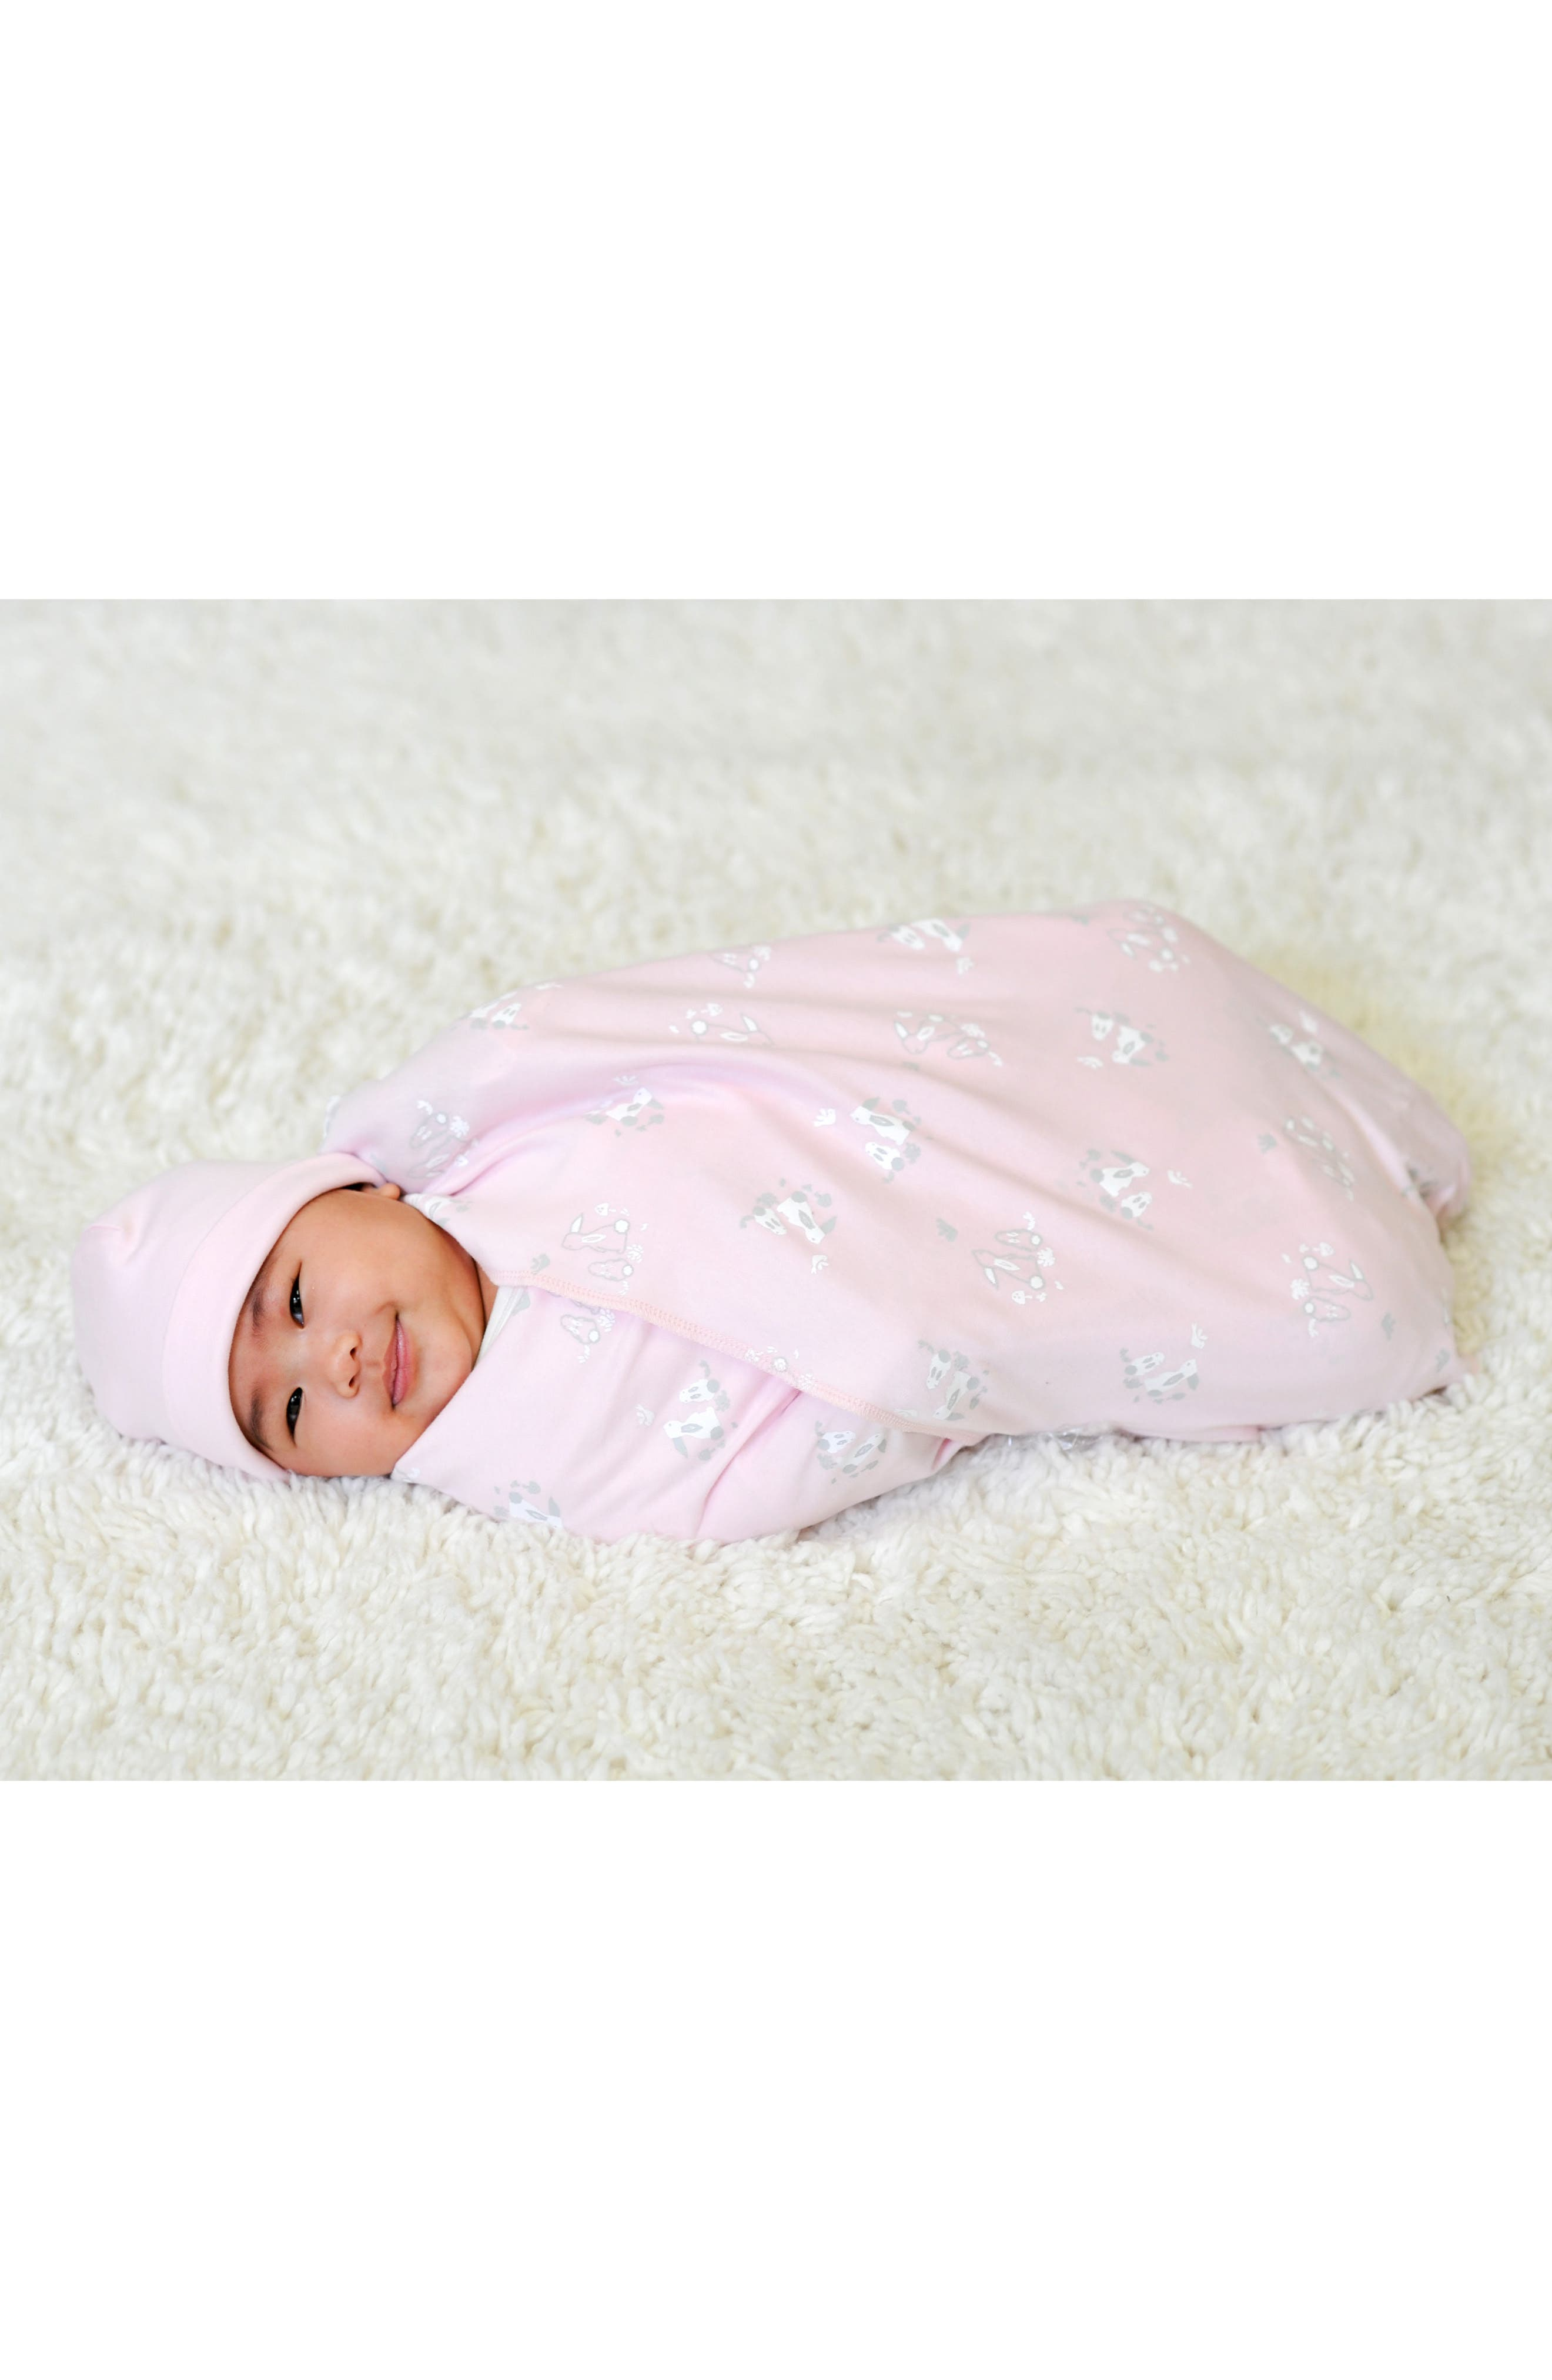 3-Piece Bunny Print Swaddle Blanket, Beanie & Lovey Toy Set,                             Alternate thumbnail 2, color,                             Pink